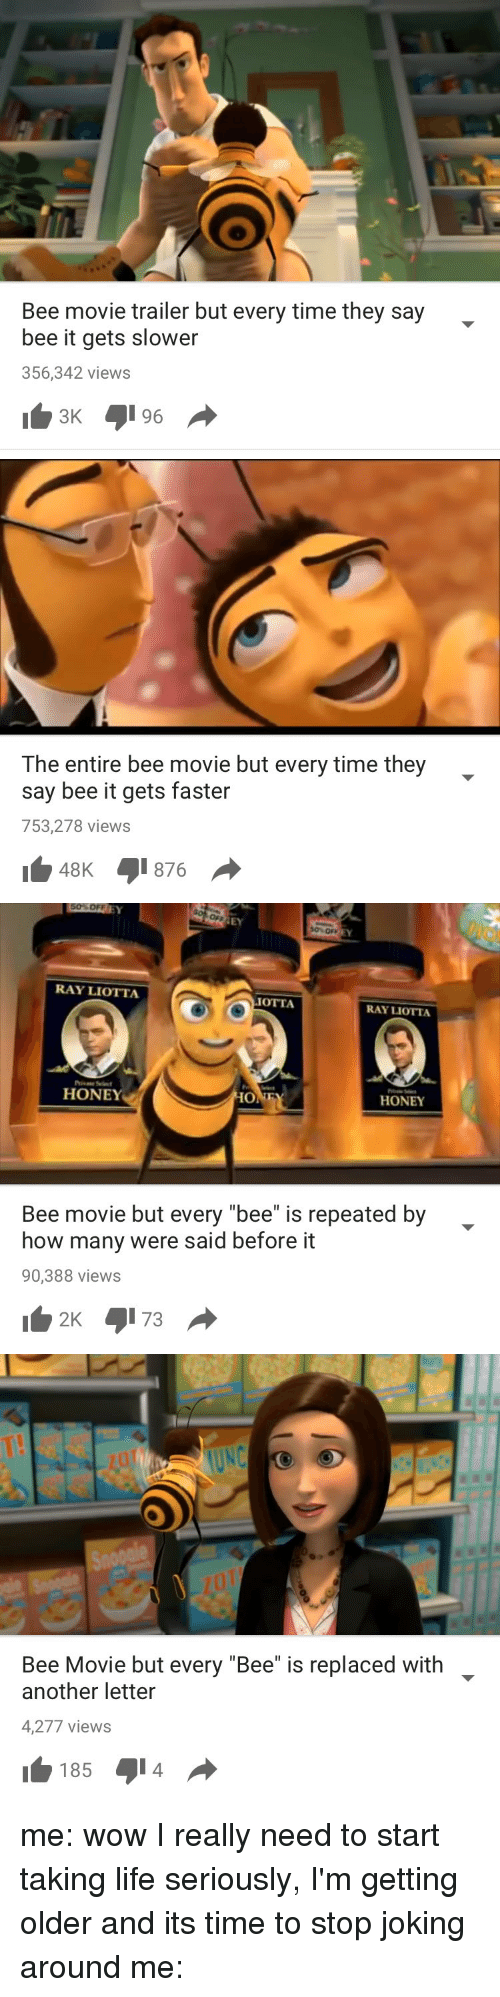 "Ray Liotta: Bee movie trailer but every time they say  bee it gets slower  356,342 views   The entire bee movie but every time they  say bee it gets faster  753,278 views  48K 876   RAY LIOTTA  OTTA  RAY LIOTTA  HONEY  HO  HONEY  Bee movie but every ""bee"" is repeated by  how many were said before it  90,388 views  2K 5173   Bee Movie but every ""Bee"" is replaced with  another letter  4,277 views  185 014 me: wow I really need to start taking life seriously, I'm getting older and its time to stop joking around me:"